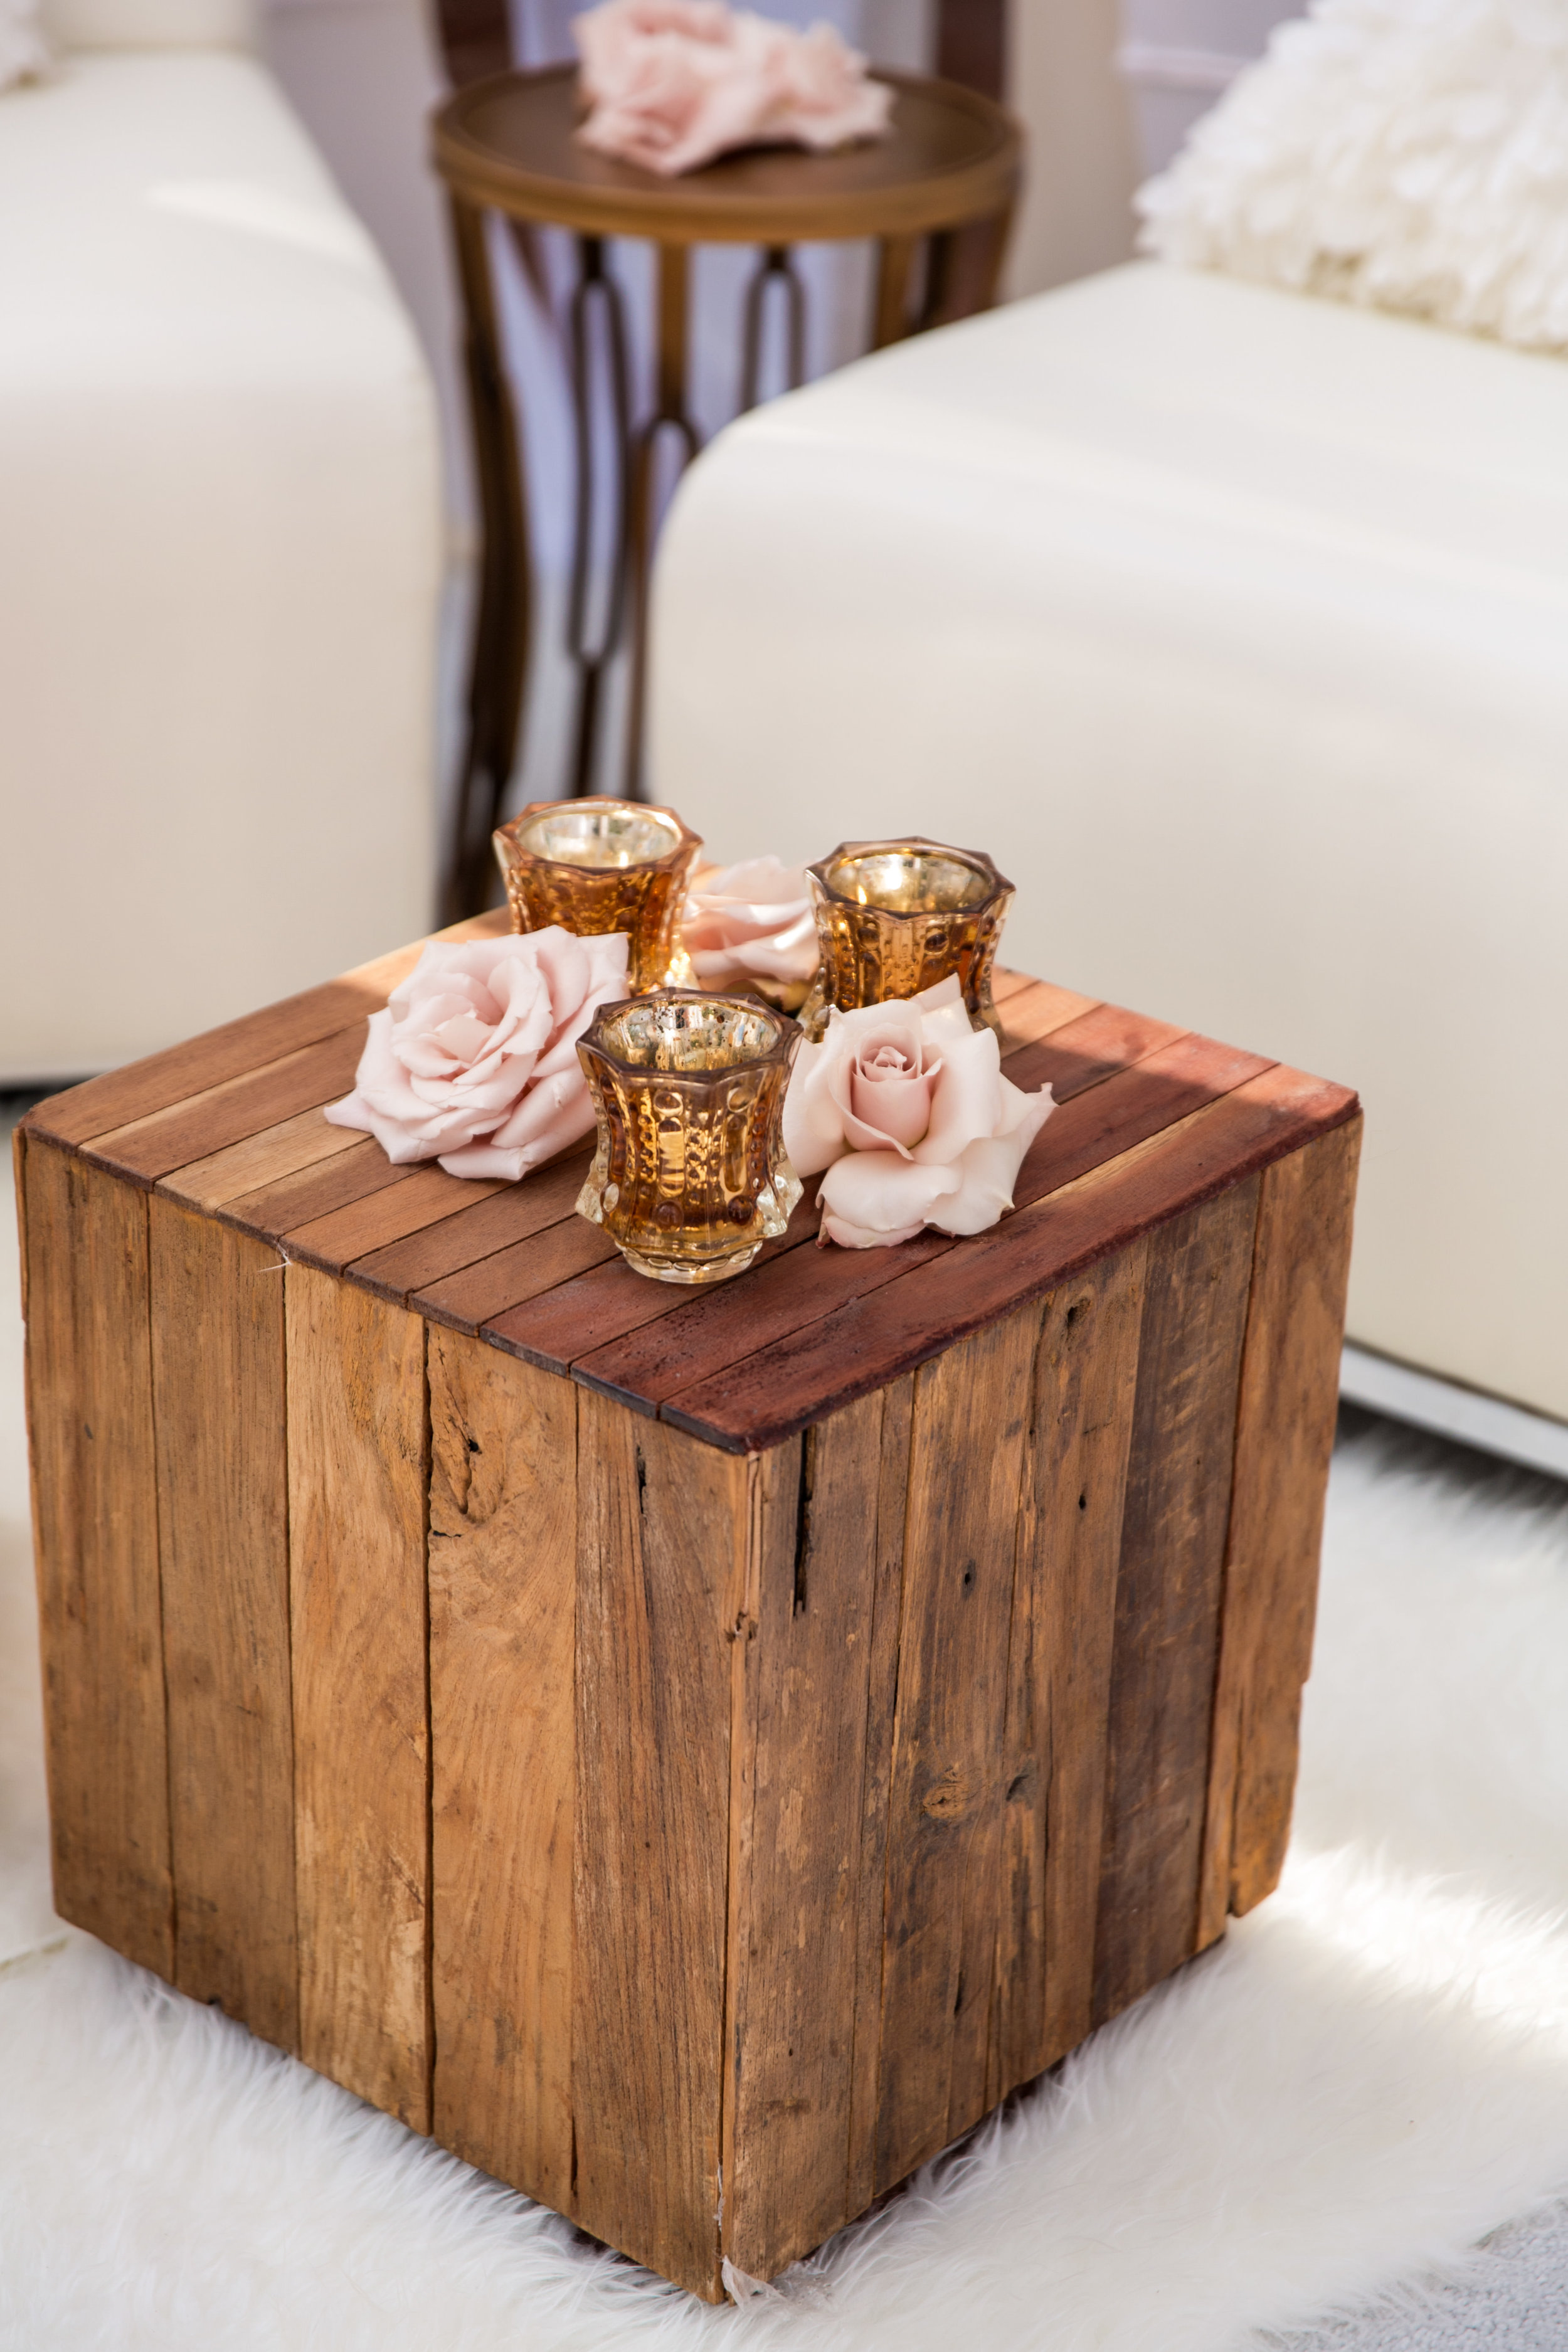 Wooden tables on fur rugs with mercury glass candle holders.Wedding Planning by  Andrea Eppolito Events  · Photography by  Shandro Photo   · Wedding Venue  Four Seasons Las Vegas  · Floral and Decor by  Destination by Design  · Chandeliers and Lighting by  LED Unplugged